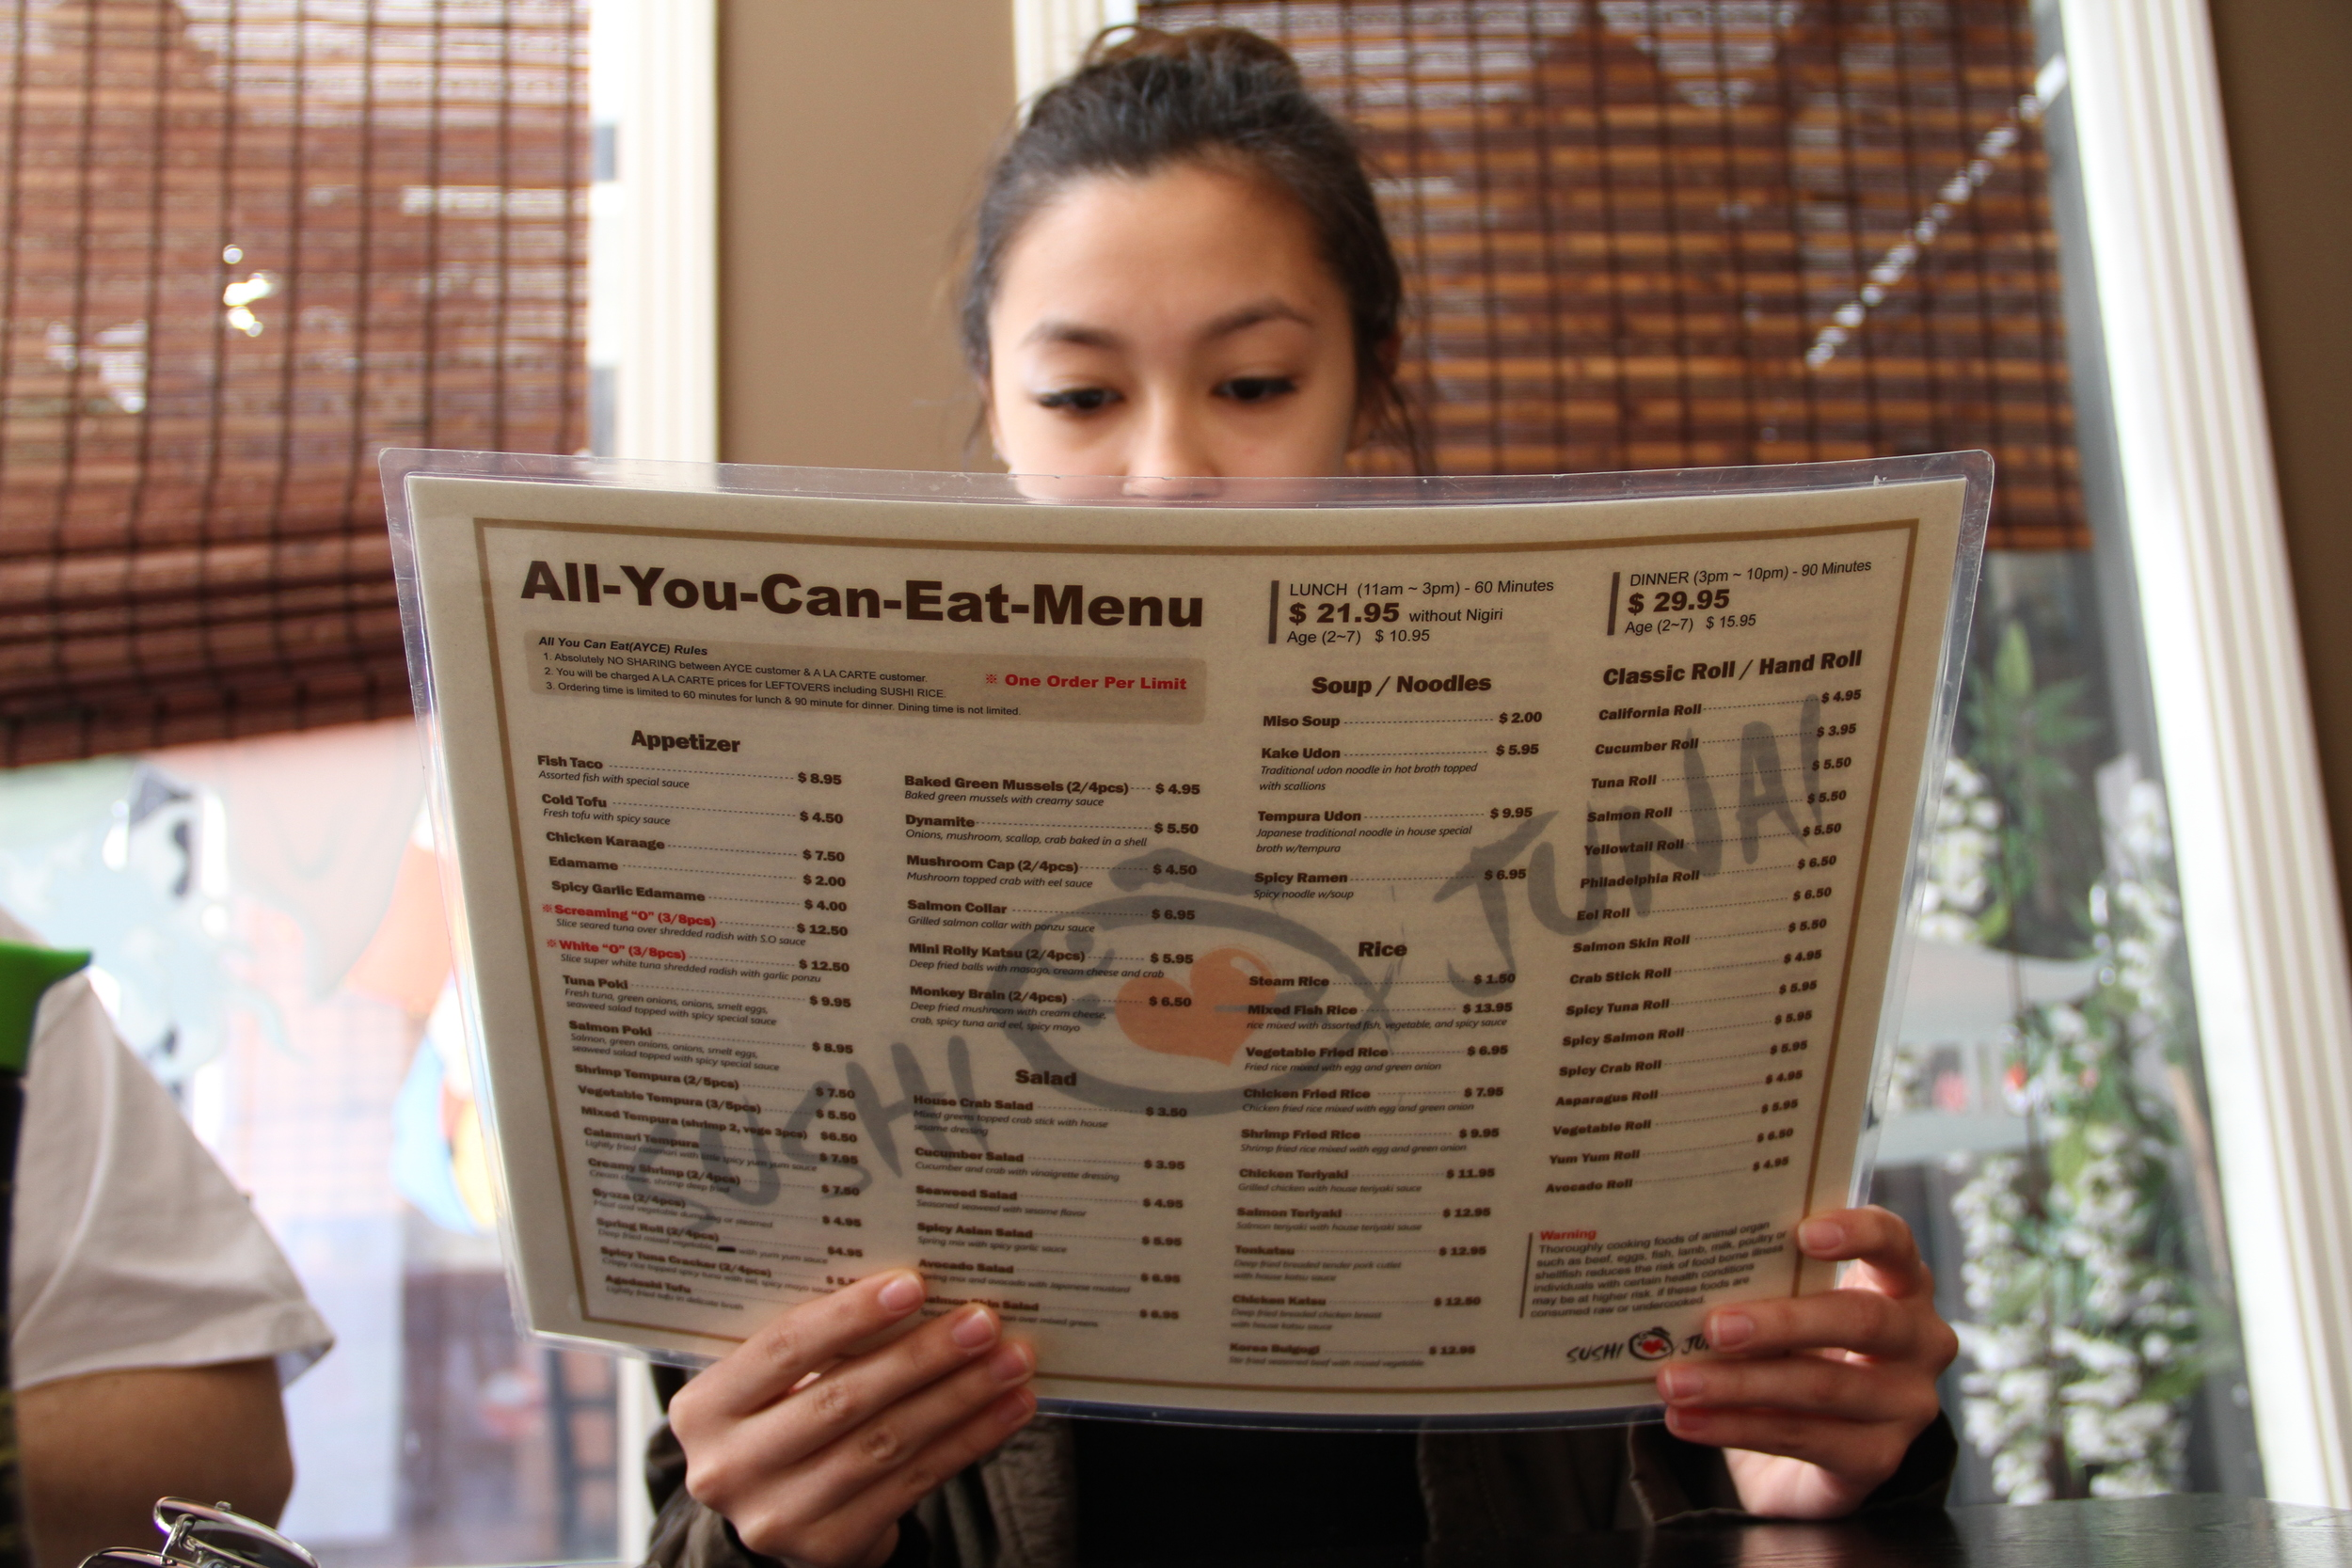 The expansive All-You-Can-Eat menu offers customers a lot of options.